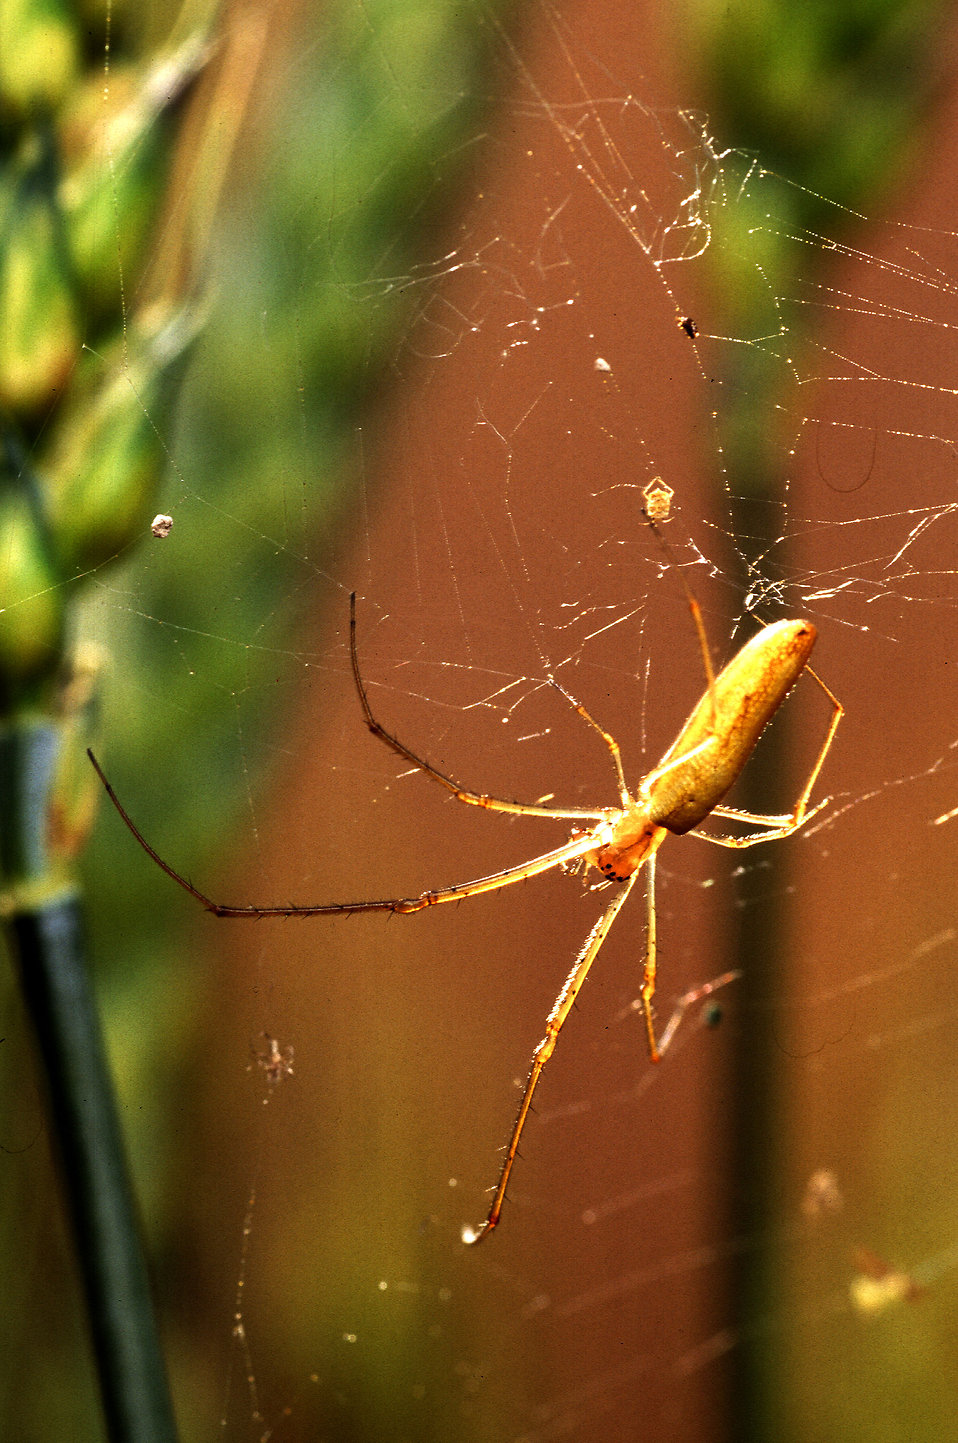 A long-jawed orb weaver spider on a web : Free Stock Photo